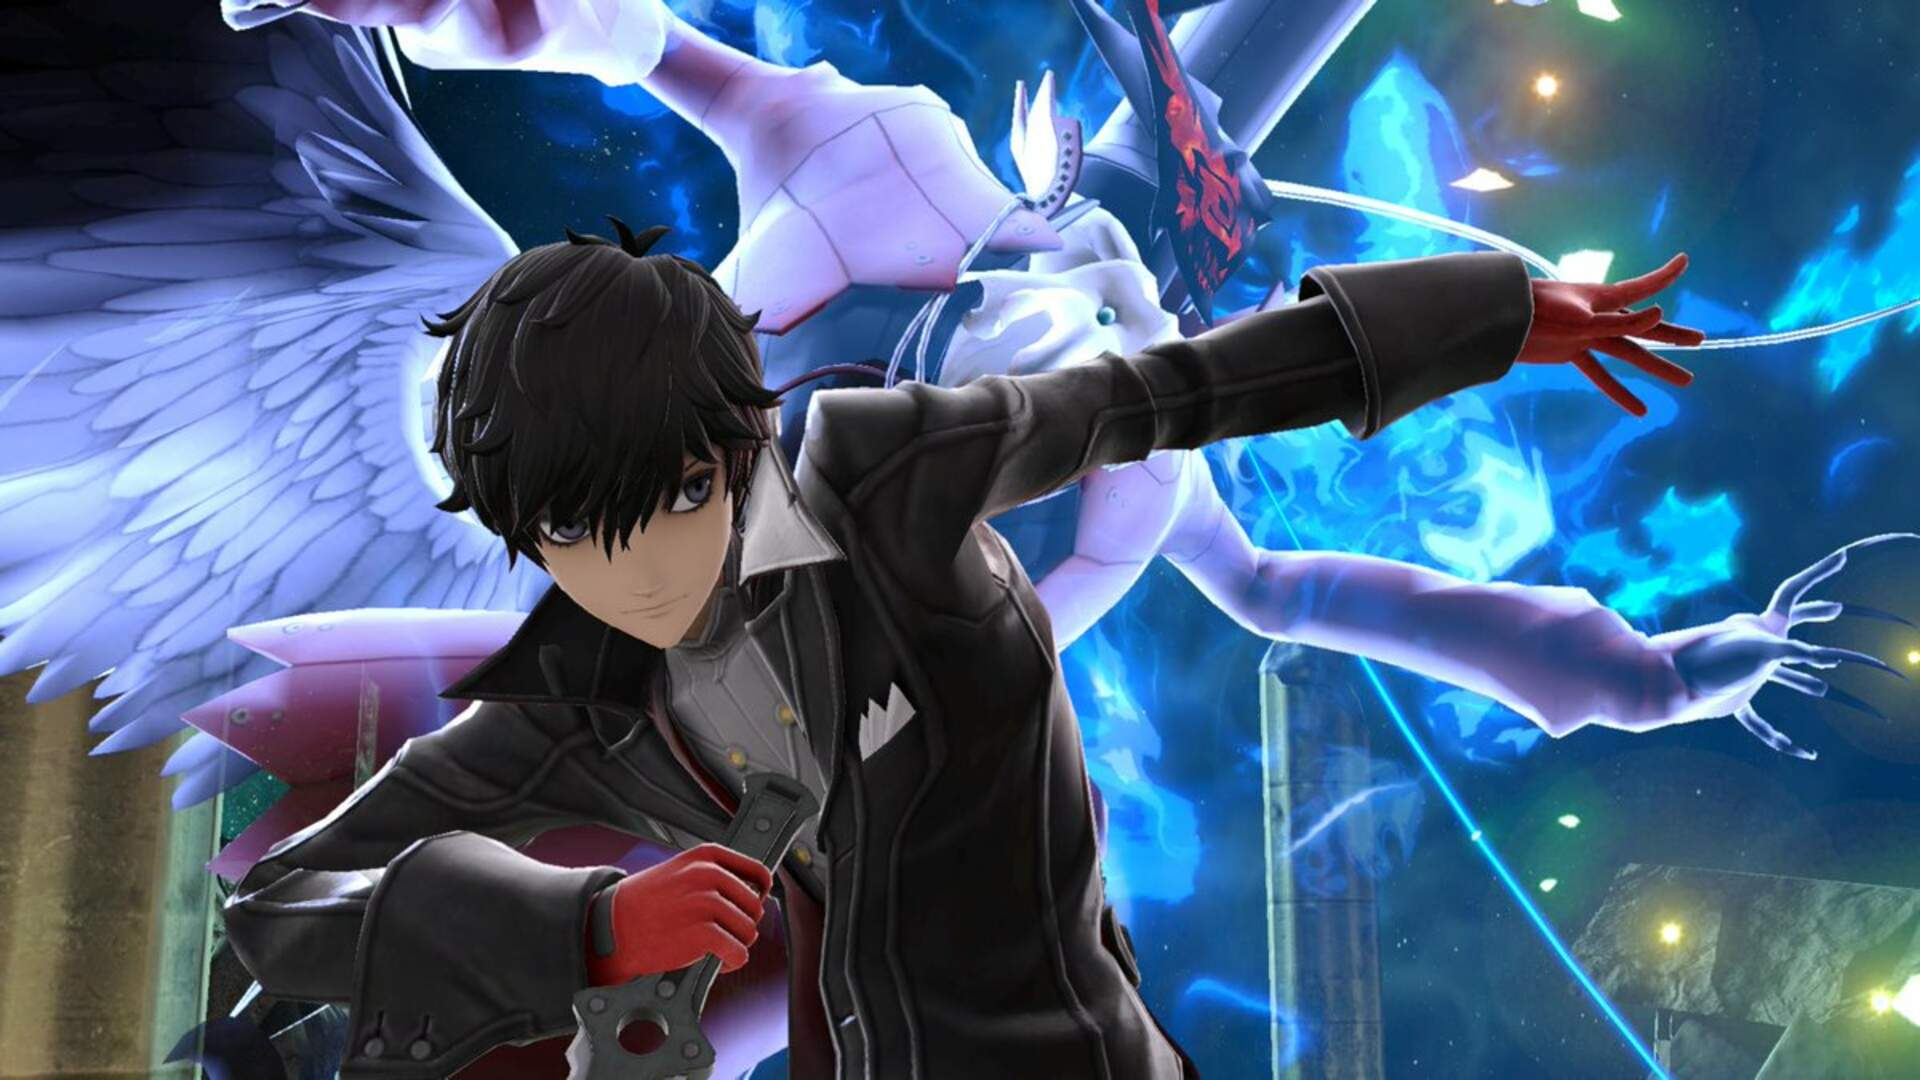 Why Super Smash Bros. Pros are Saying Joker Could be a Top Tier Fighter